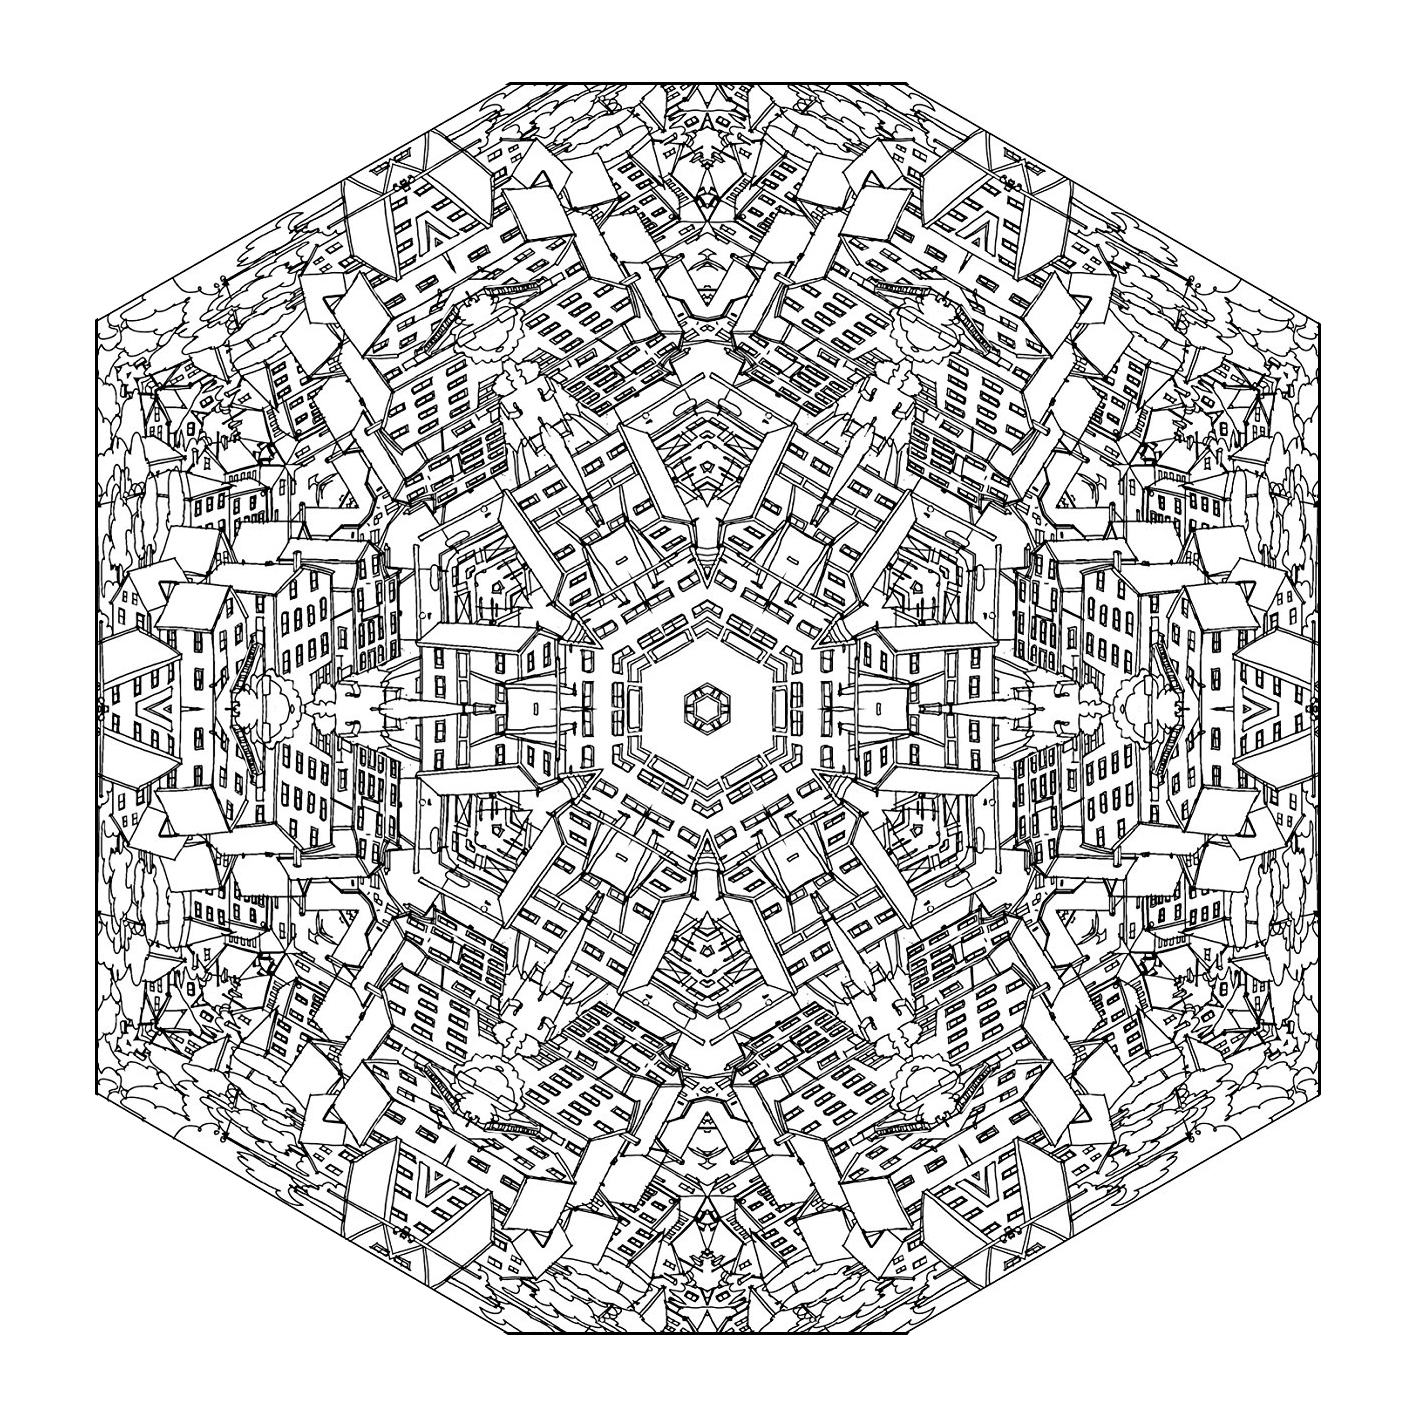 A Mandala for the pros ! High number of small areas making think about cities, streets, houses ... just waiting for colors chosen with artistic sense. Let your mind wander : this step is essential to get the most out of coloring to reduce your stress.